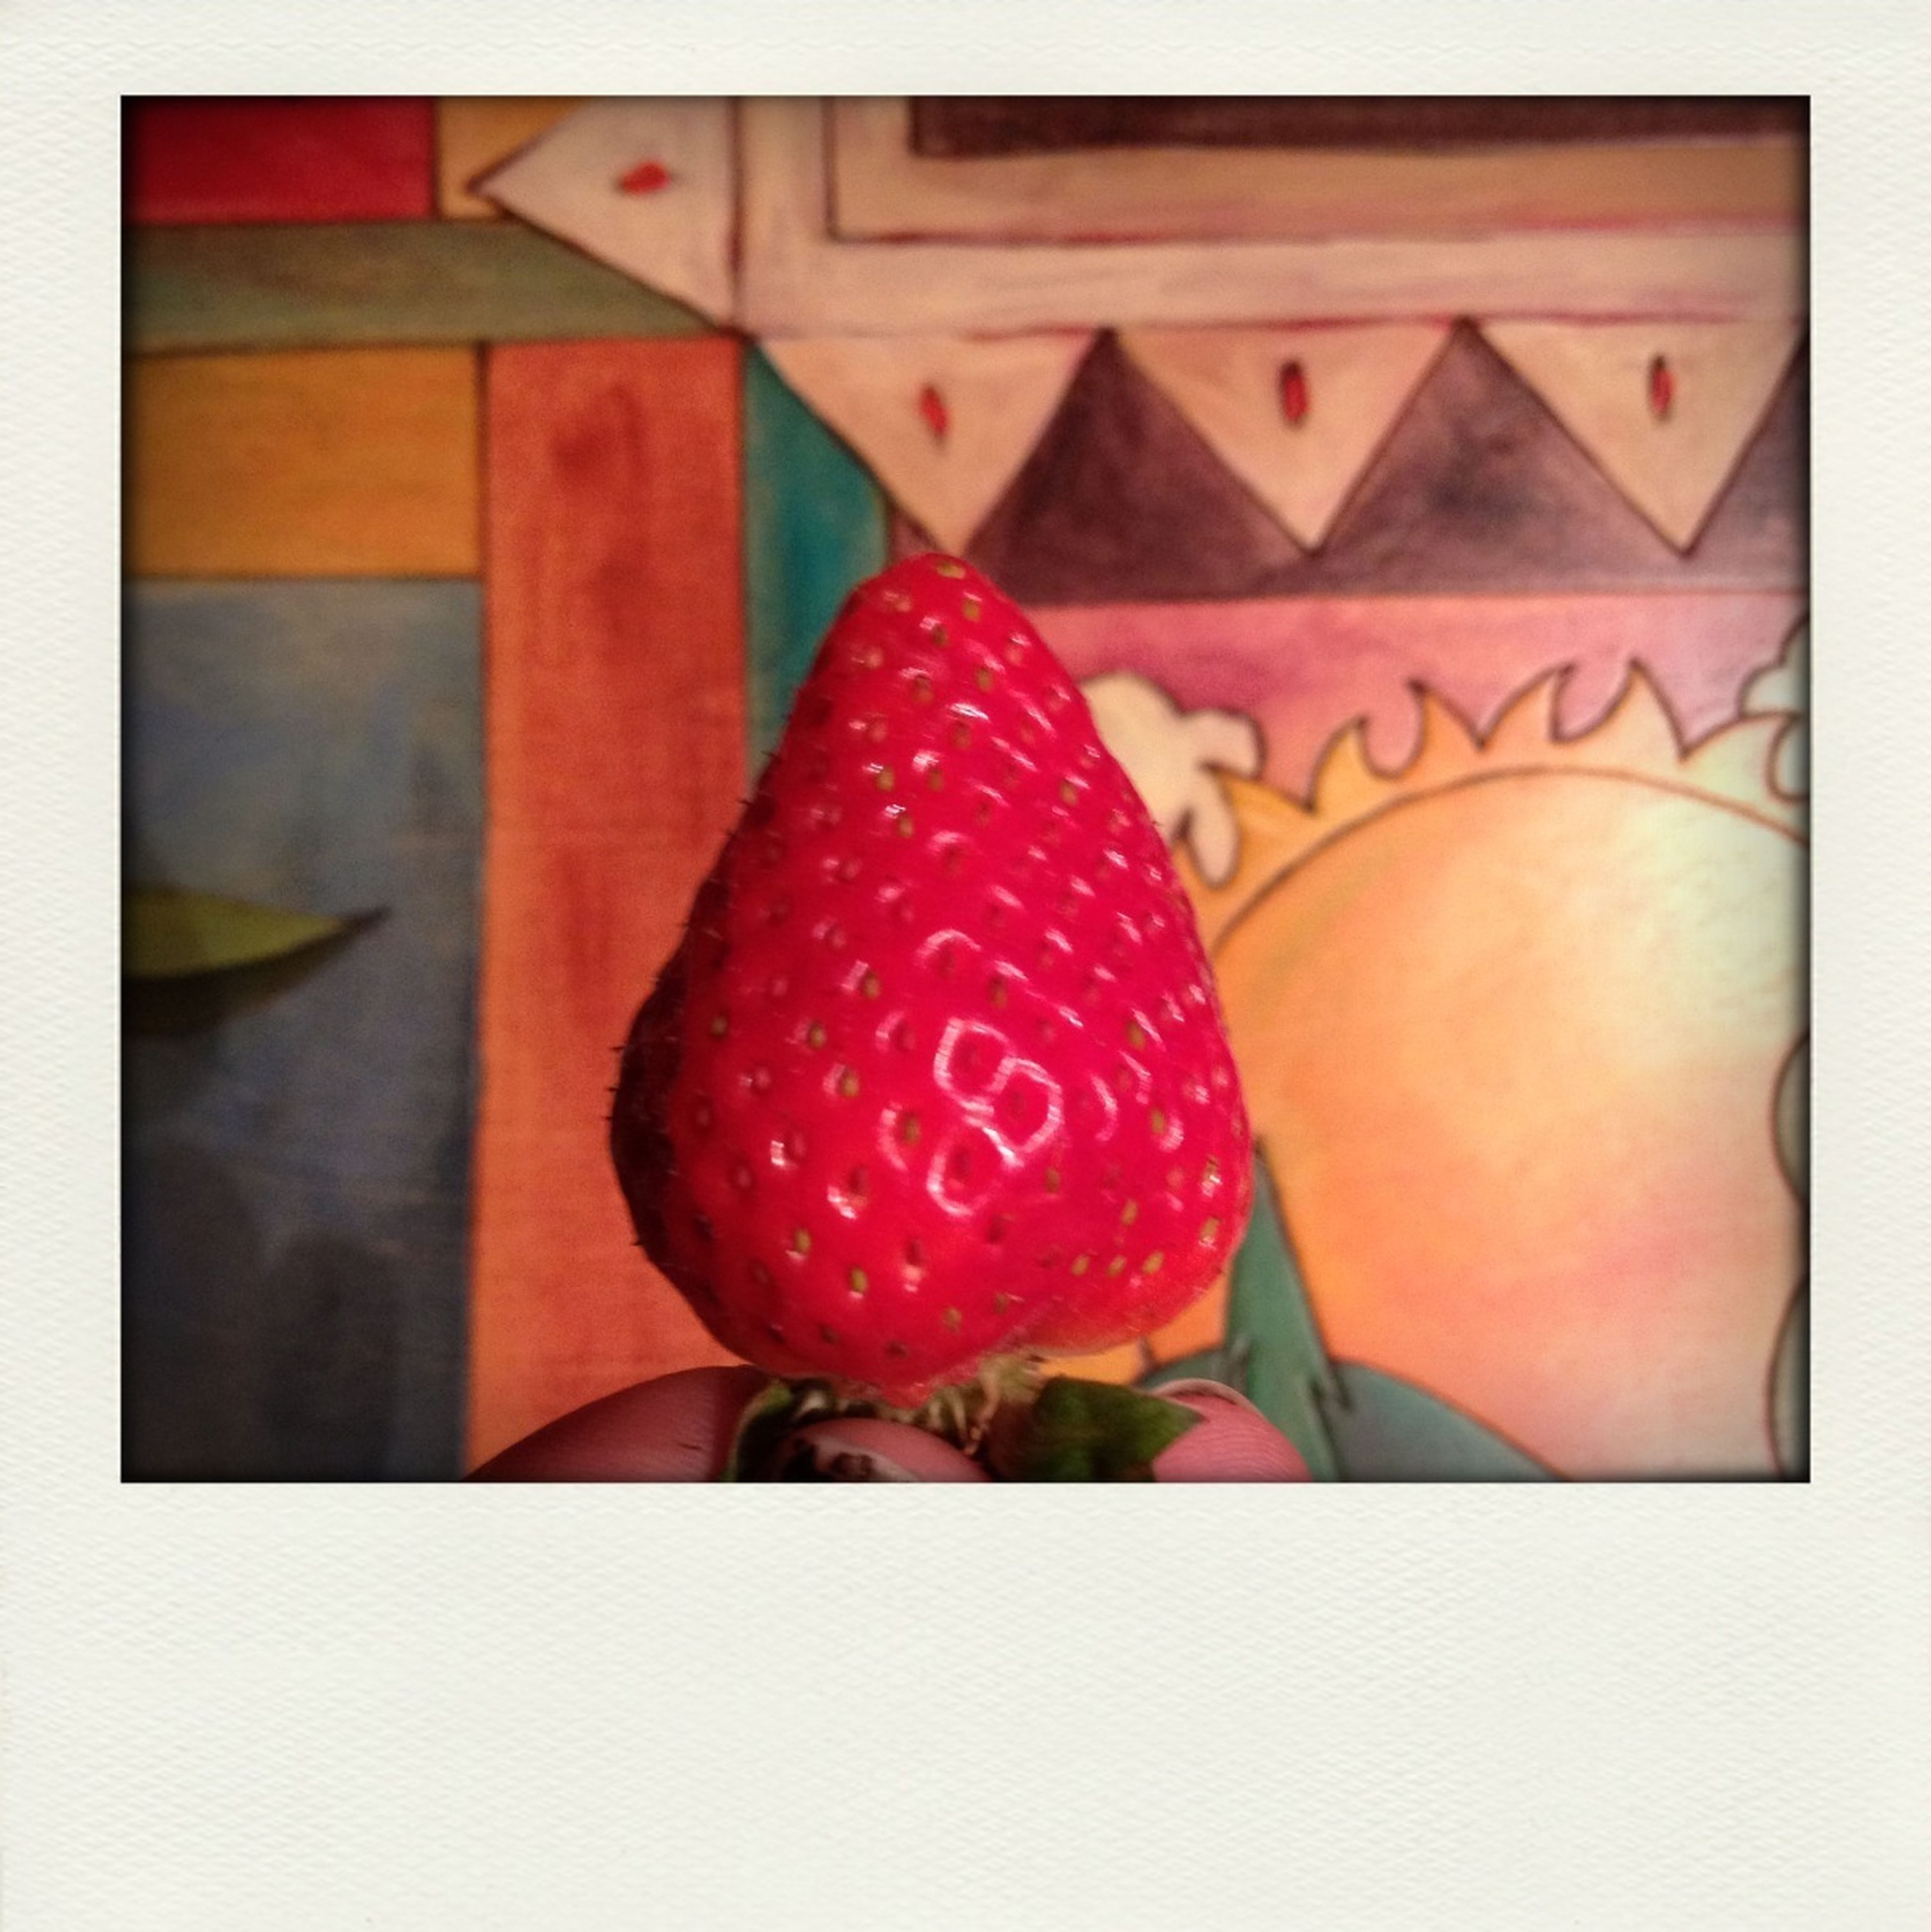 transfer print, red, auto post production filter, indoors, food and drink, still life, close-up, heart shape, food, sweet food, table, multi colored, fruit, freshness, strawberry, love, high angle view, creativity, celebration, art and craft